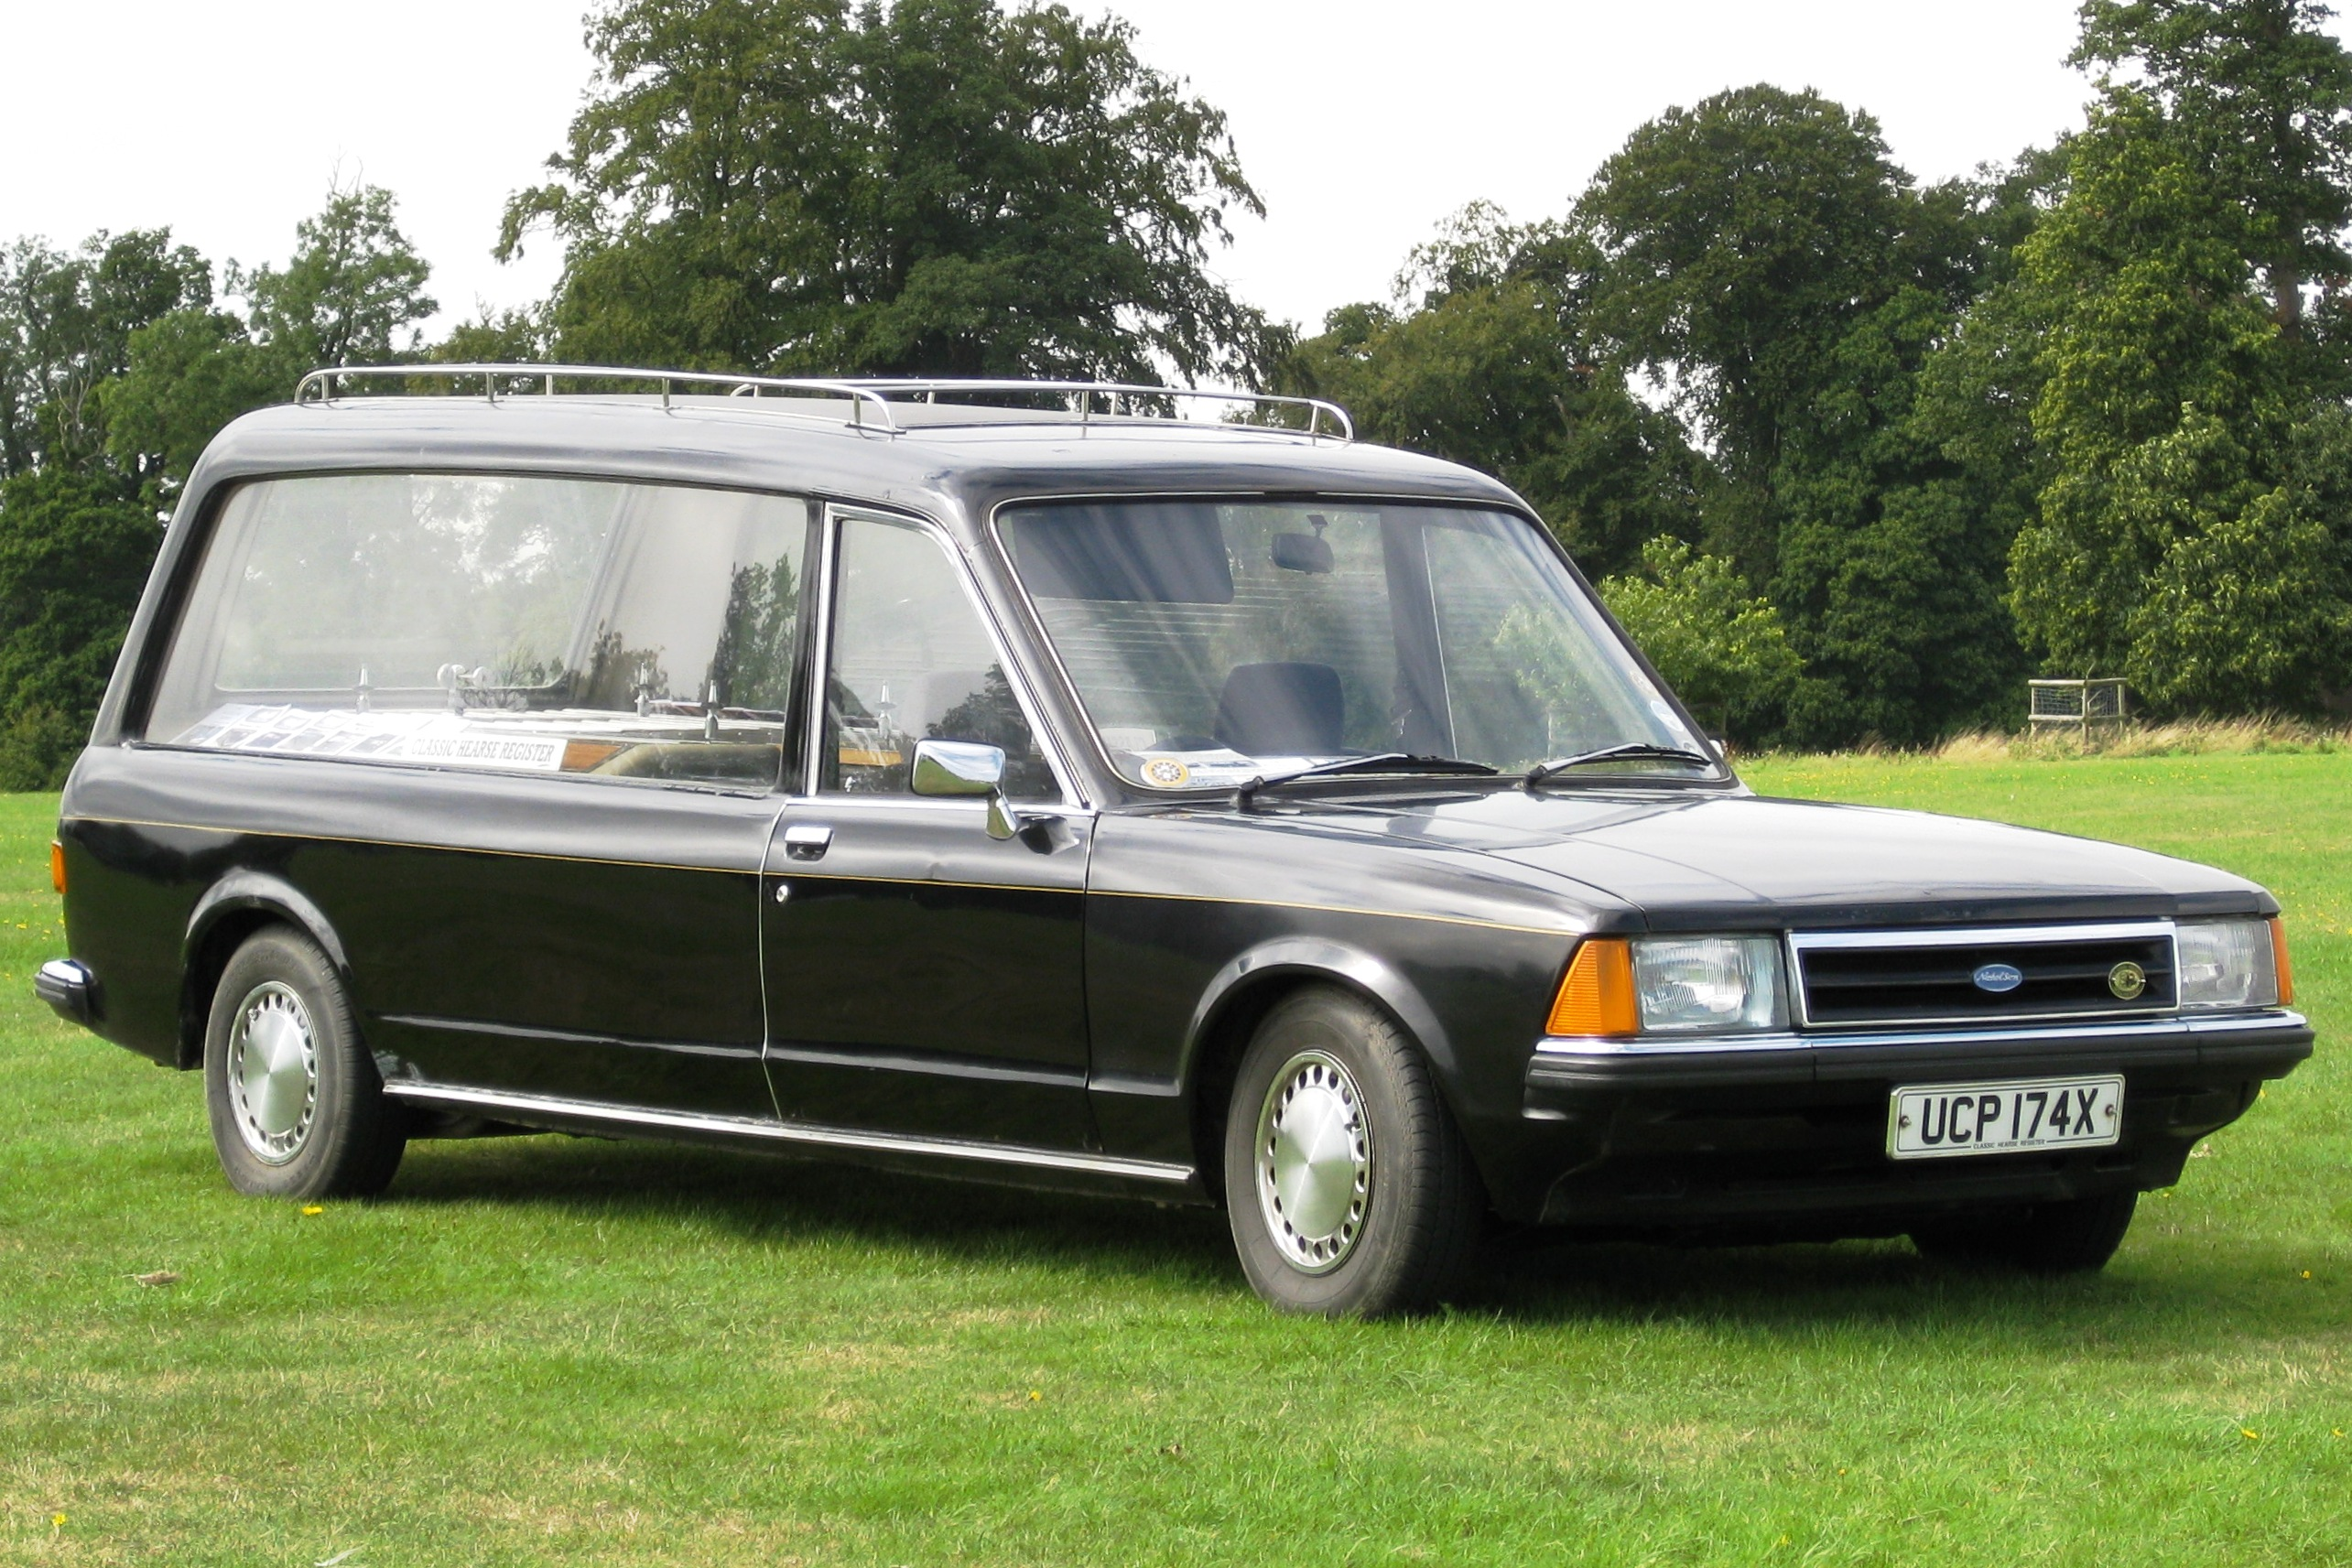 File:Ford Granada based Woodall Nicholson hearse 2293cc first